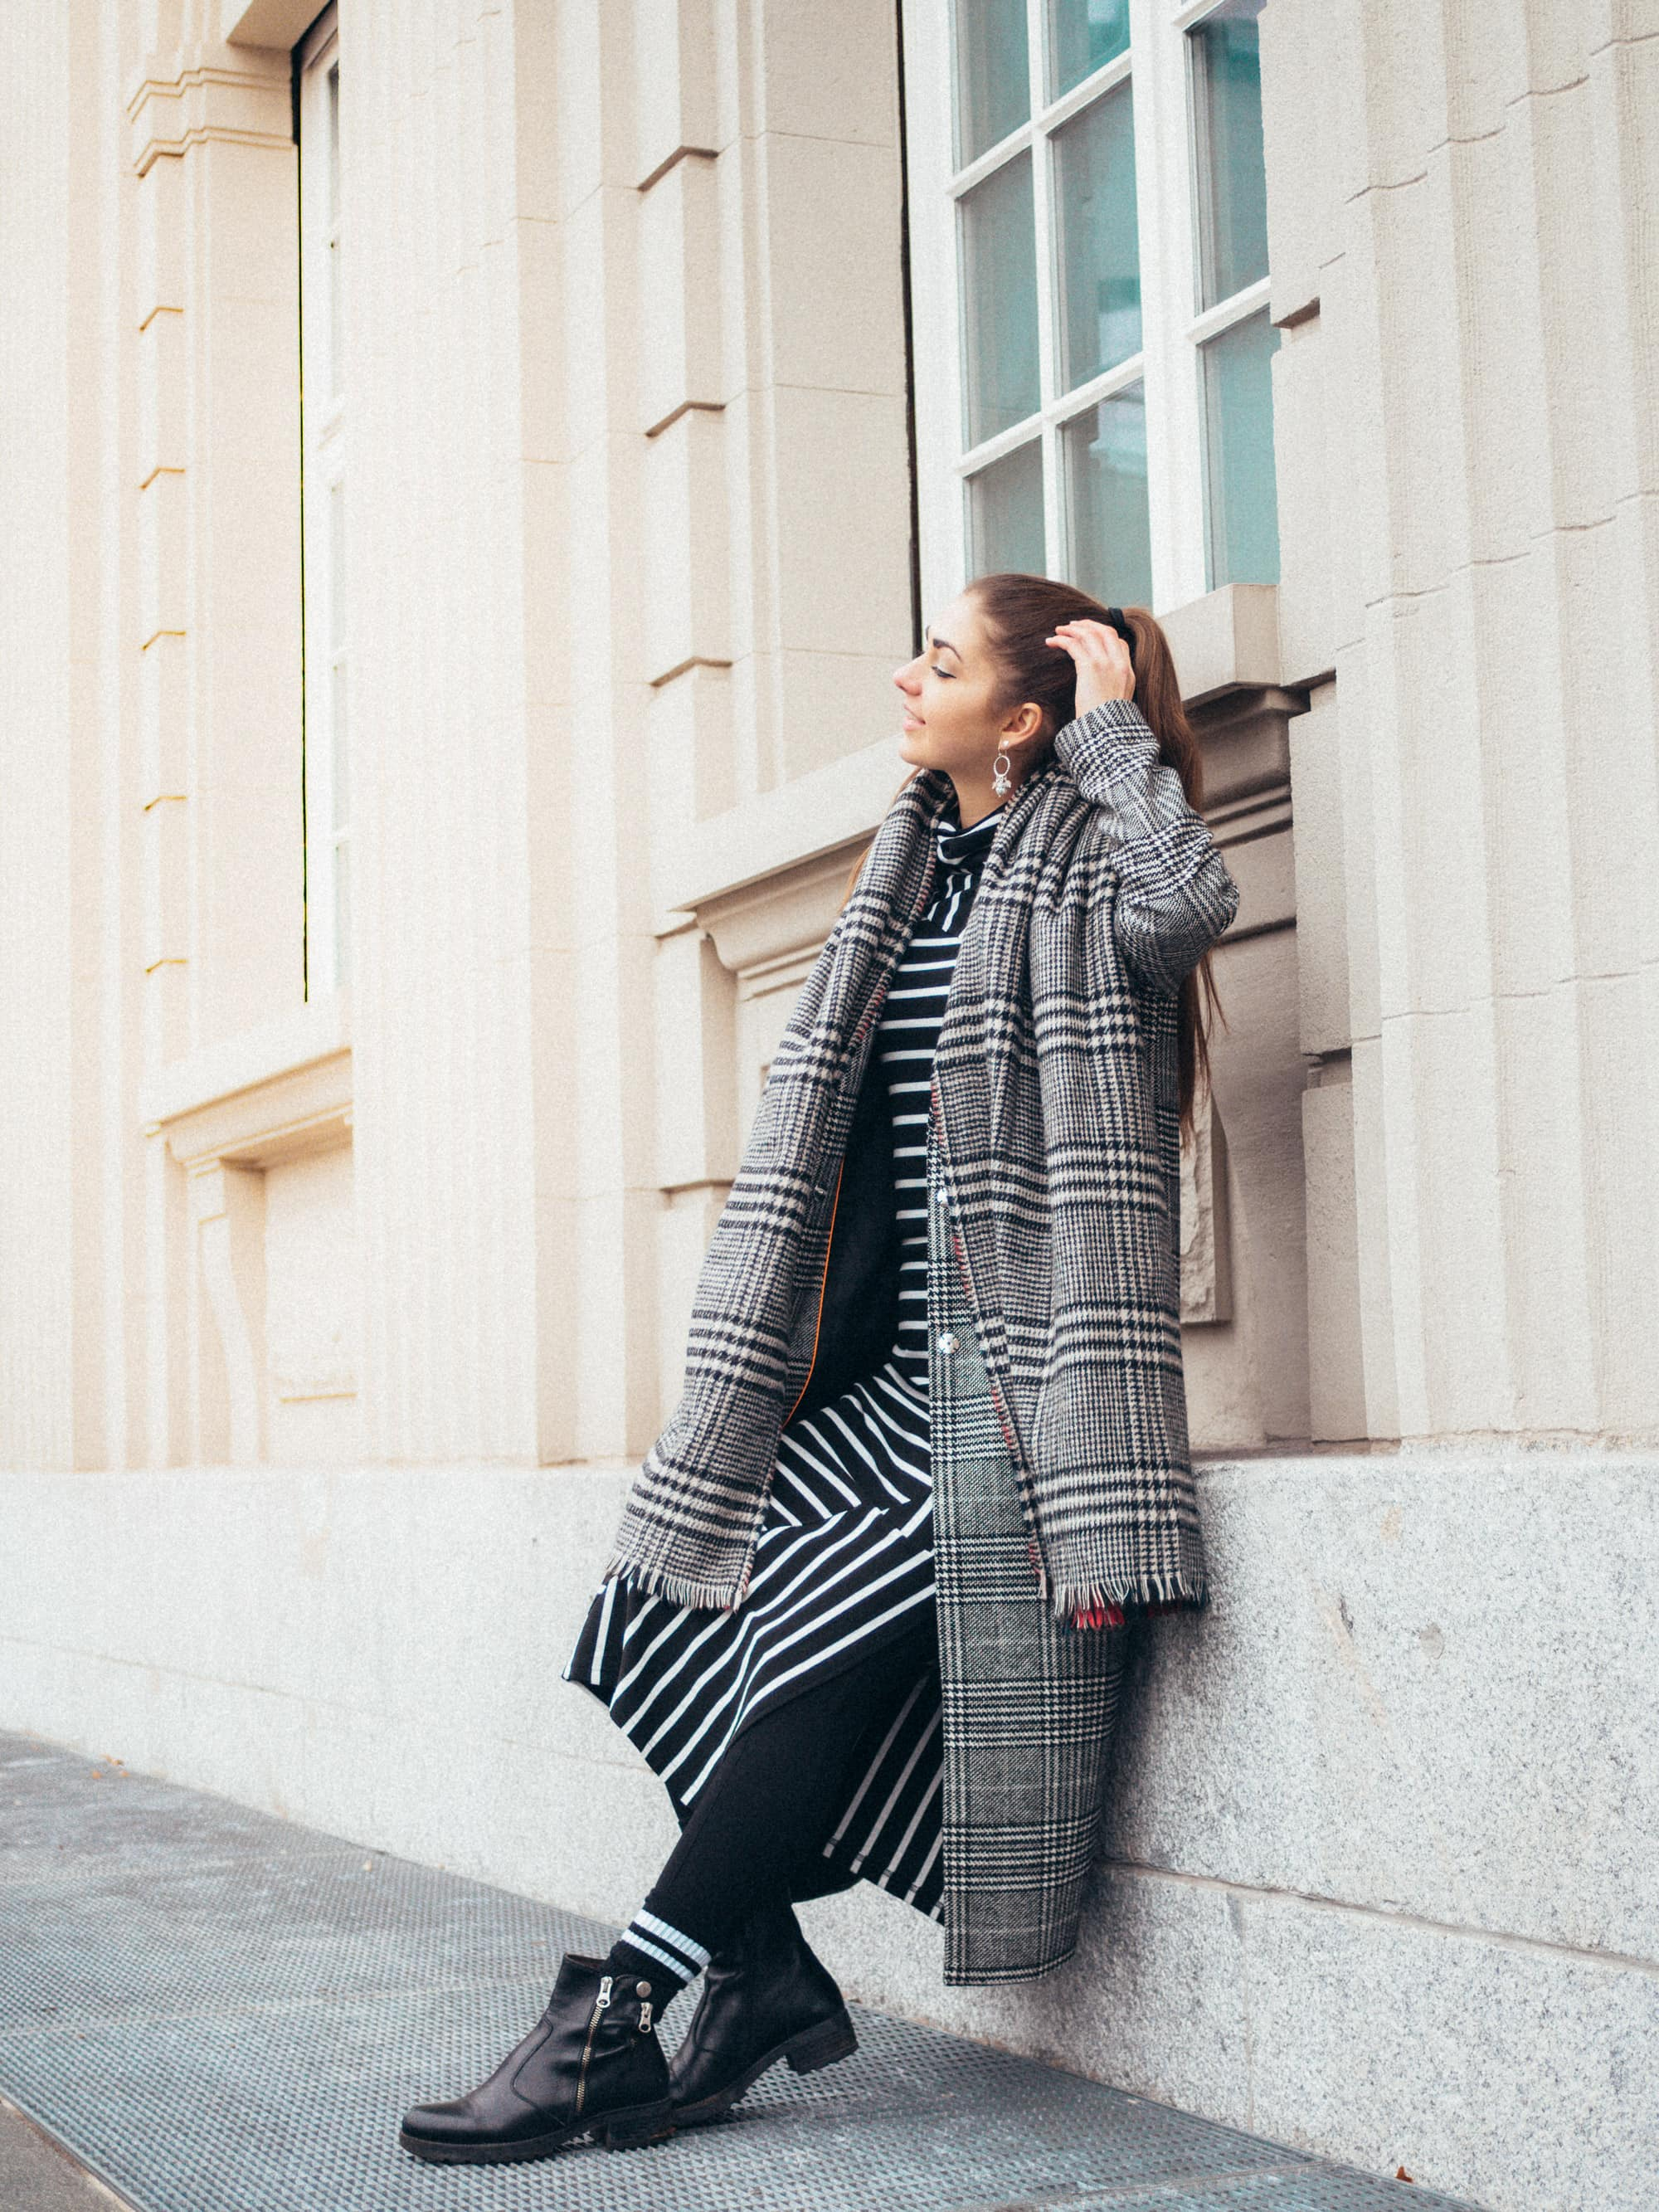 Checked-Coat/Chloé-Bag/Oversized-Coat/Outfit/Fashion/Outfitpost/Outfit-Photo/Ankle-Boots